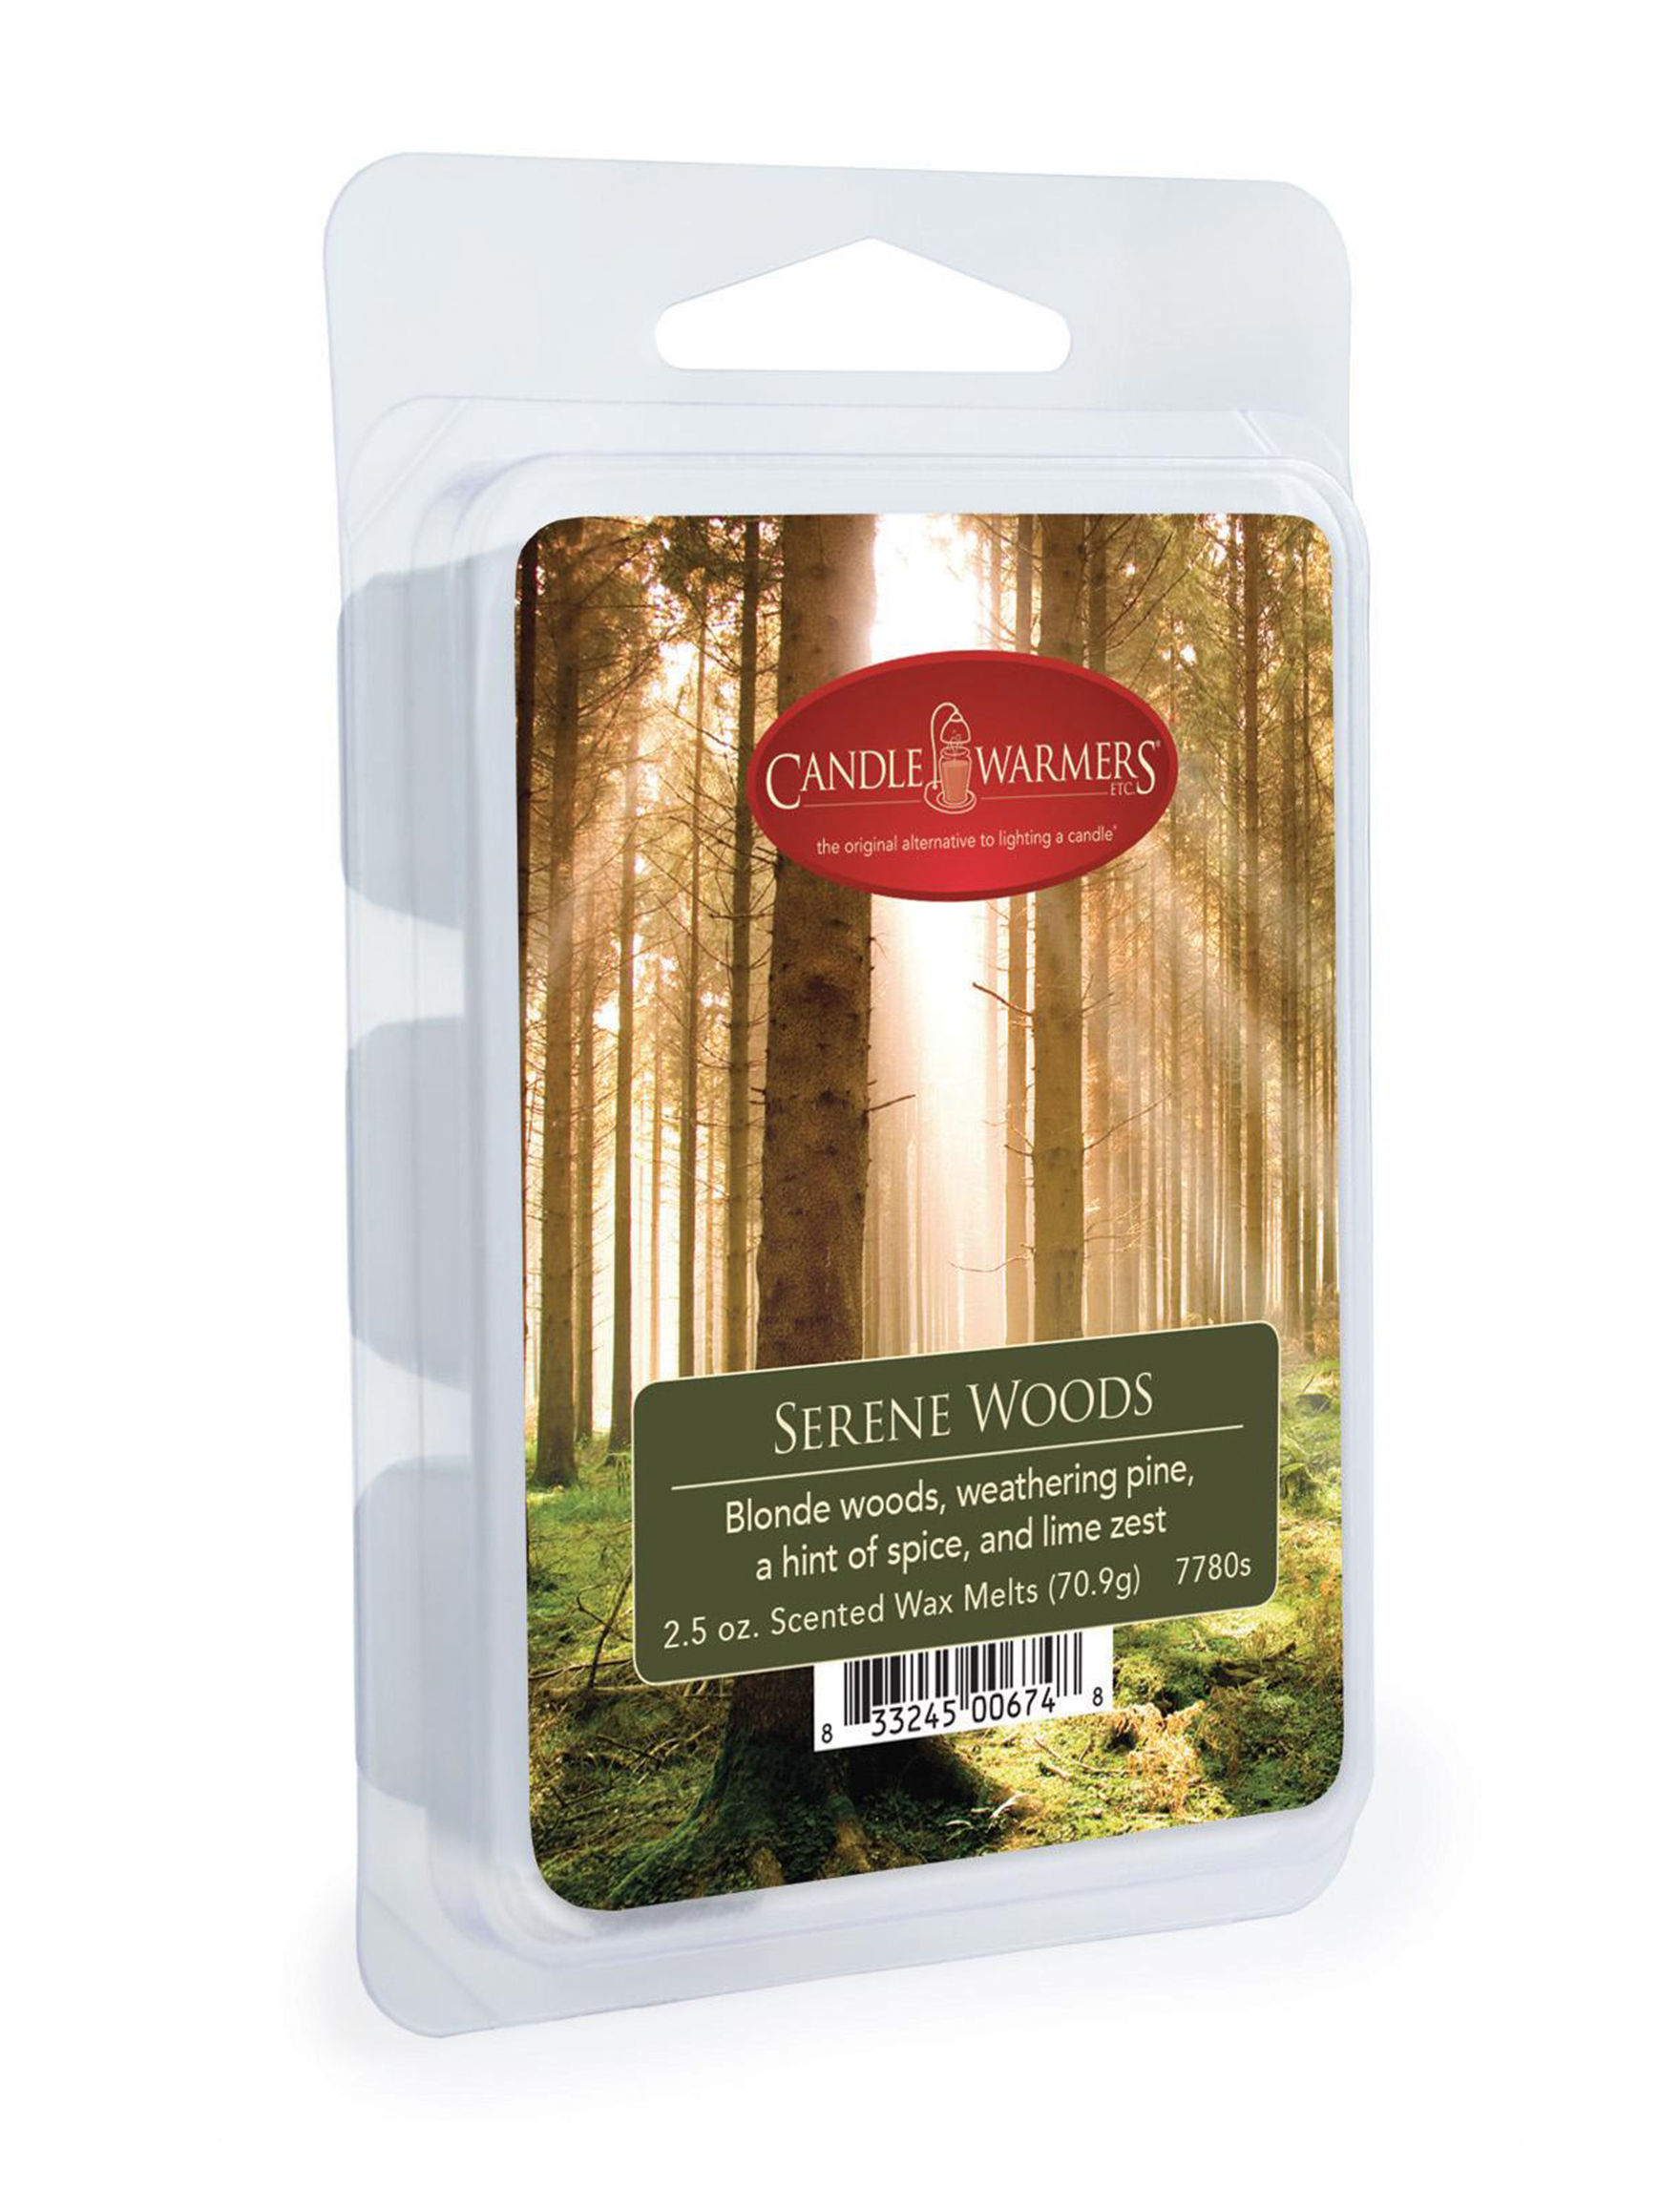 Candle Warmers  Wax Melts & Oils Candles & Diffusers